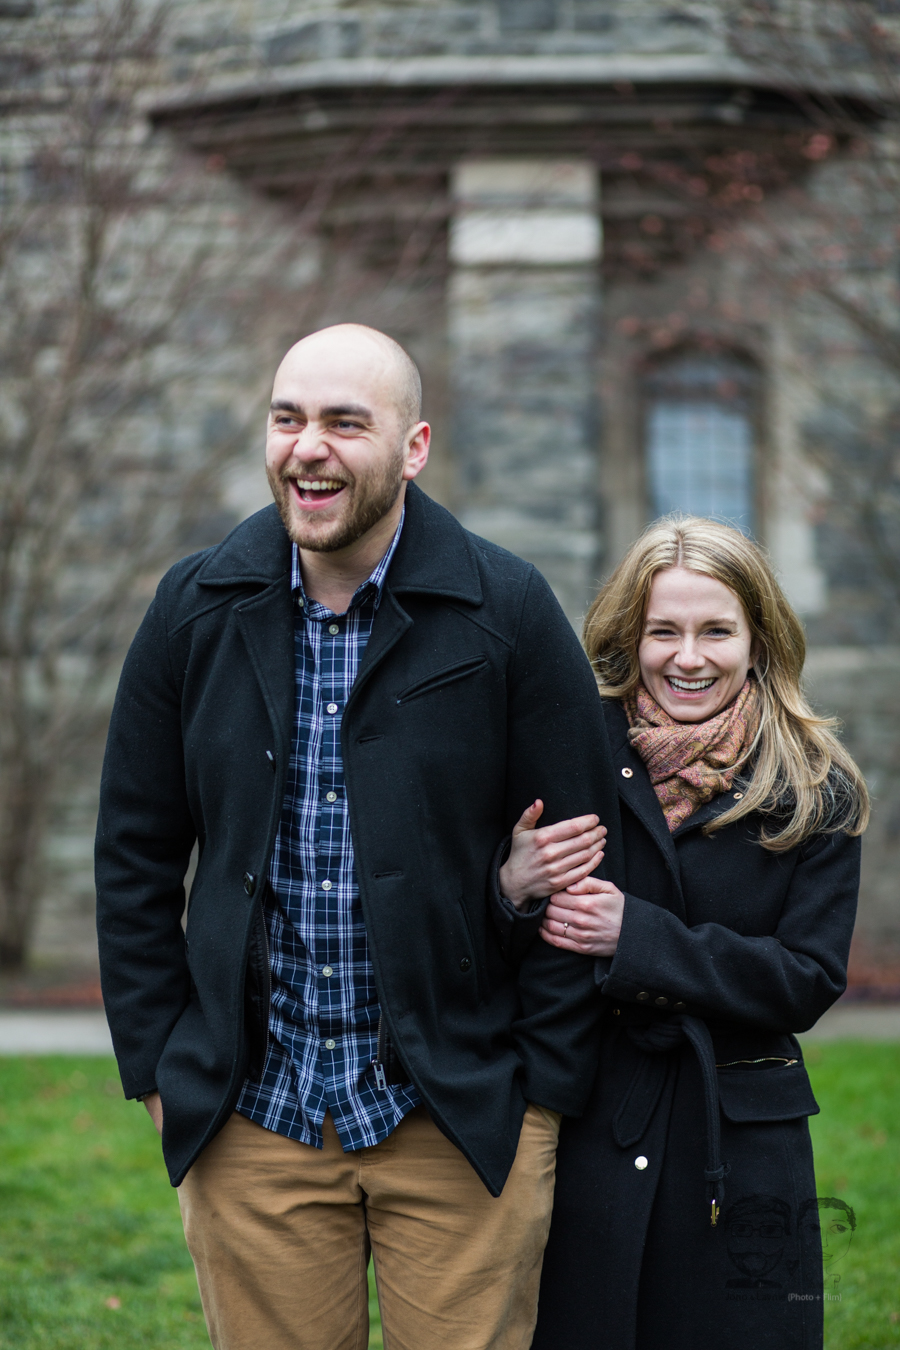 026University of Toronto e-session-Jono & Laynie Co.jpg